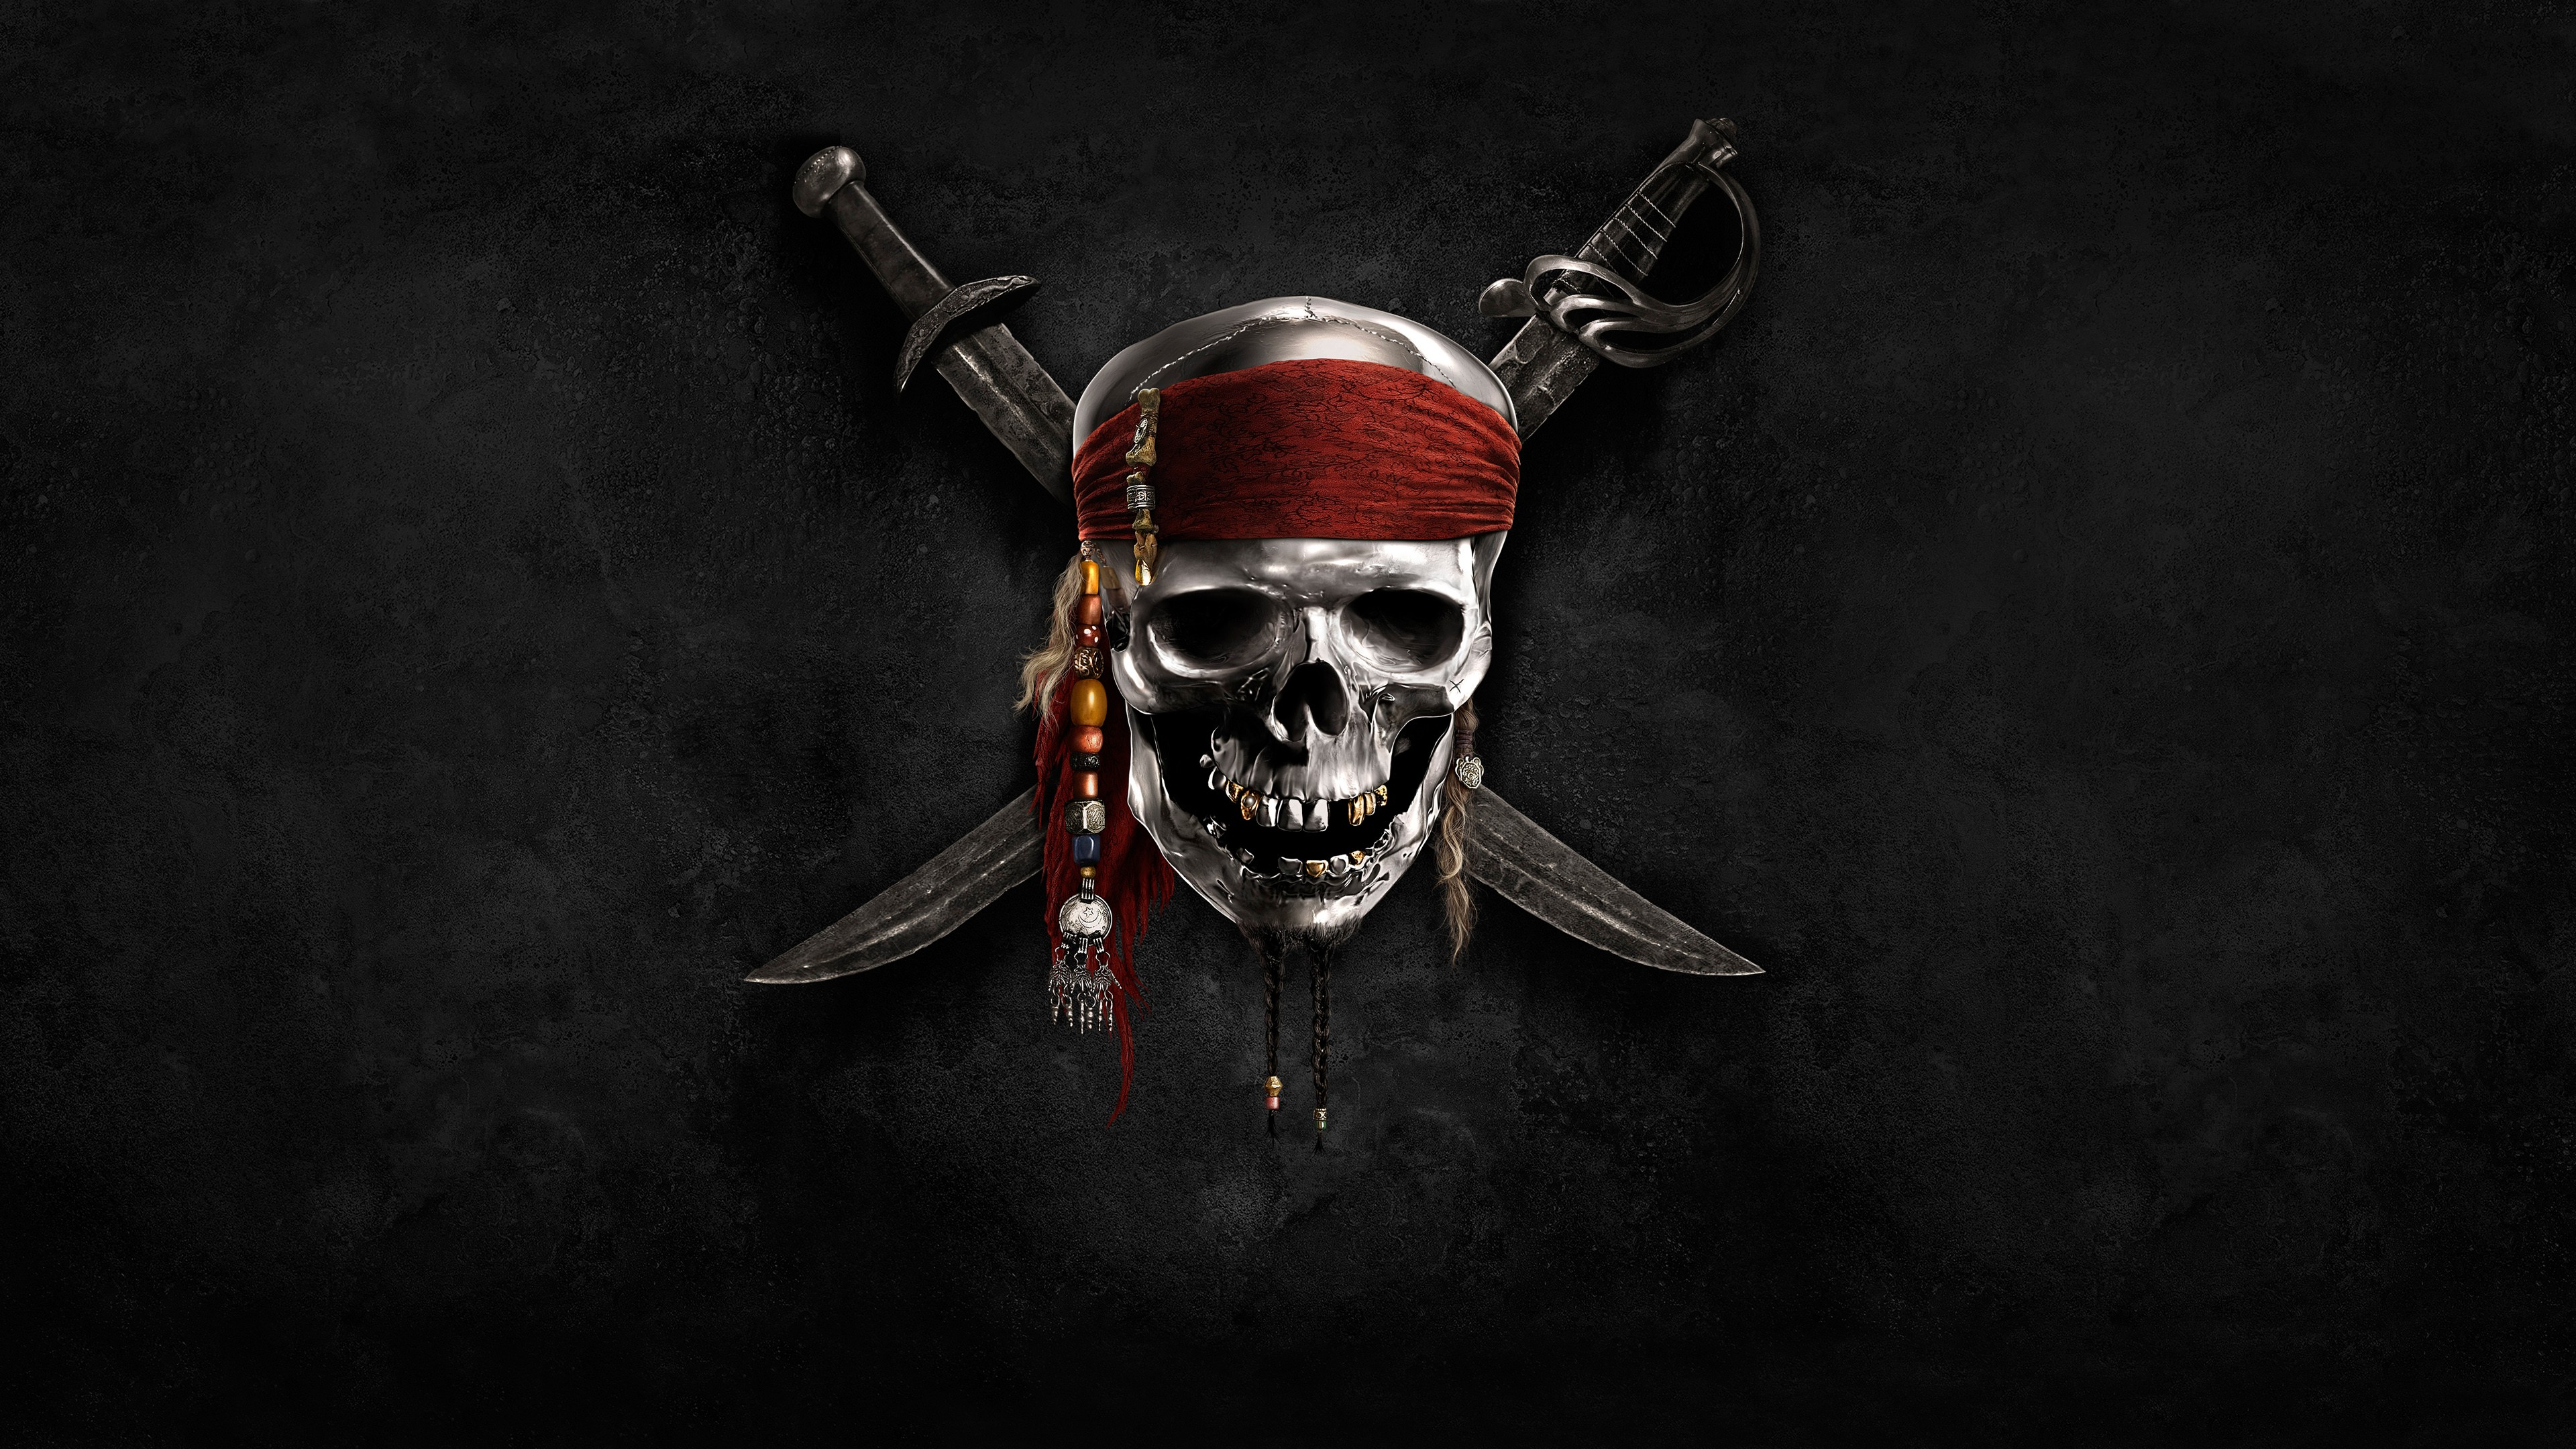 Pirate 4k hd artist 4k wallpapers images backgrounds - Anime pirate wallpaper ...